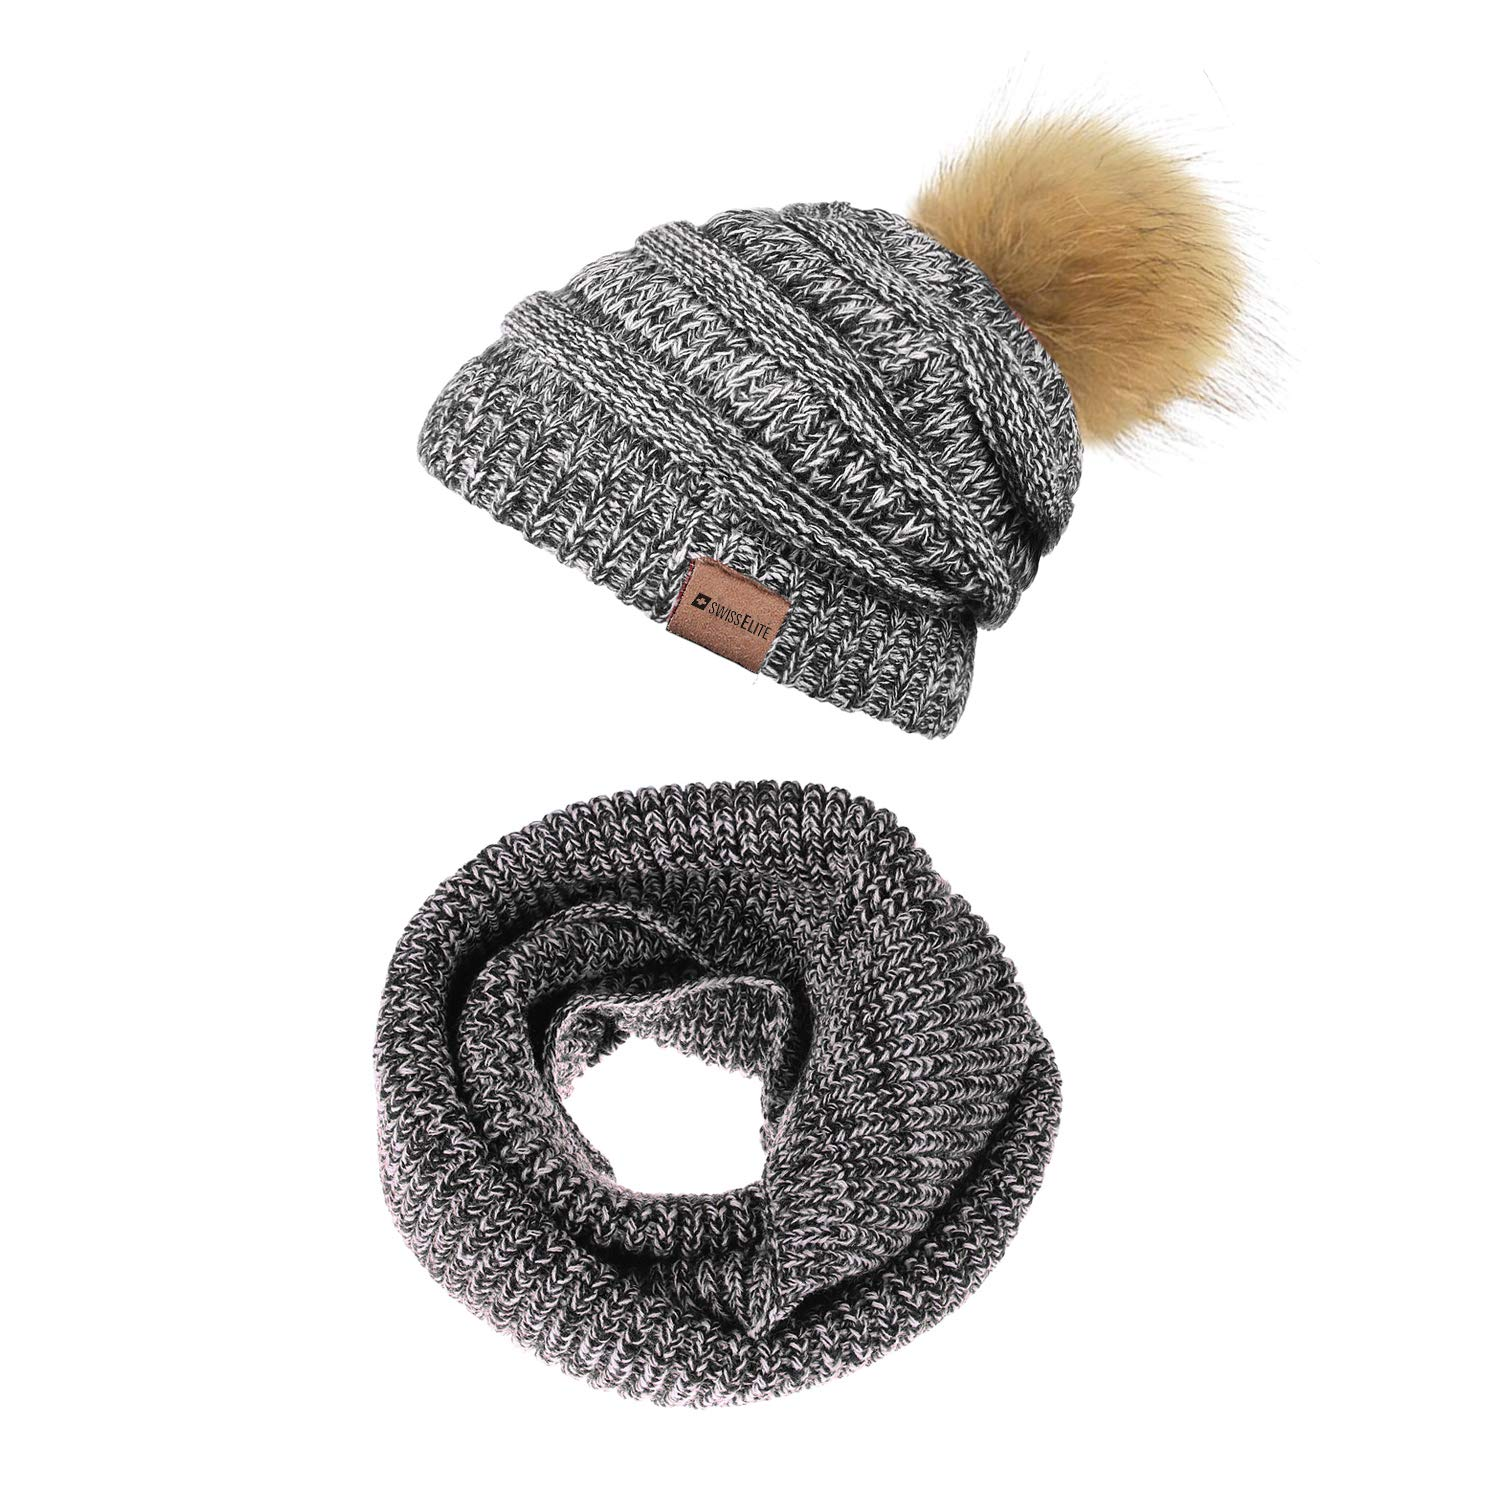 Black Whites 2 Pack Beanie Hats for women with Pom Pom  Warm, Soft Knit Beanie, Thick Slouchy Knit Skull Cap